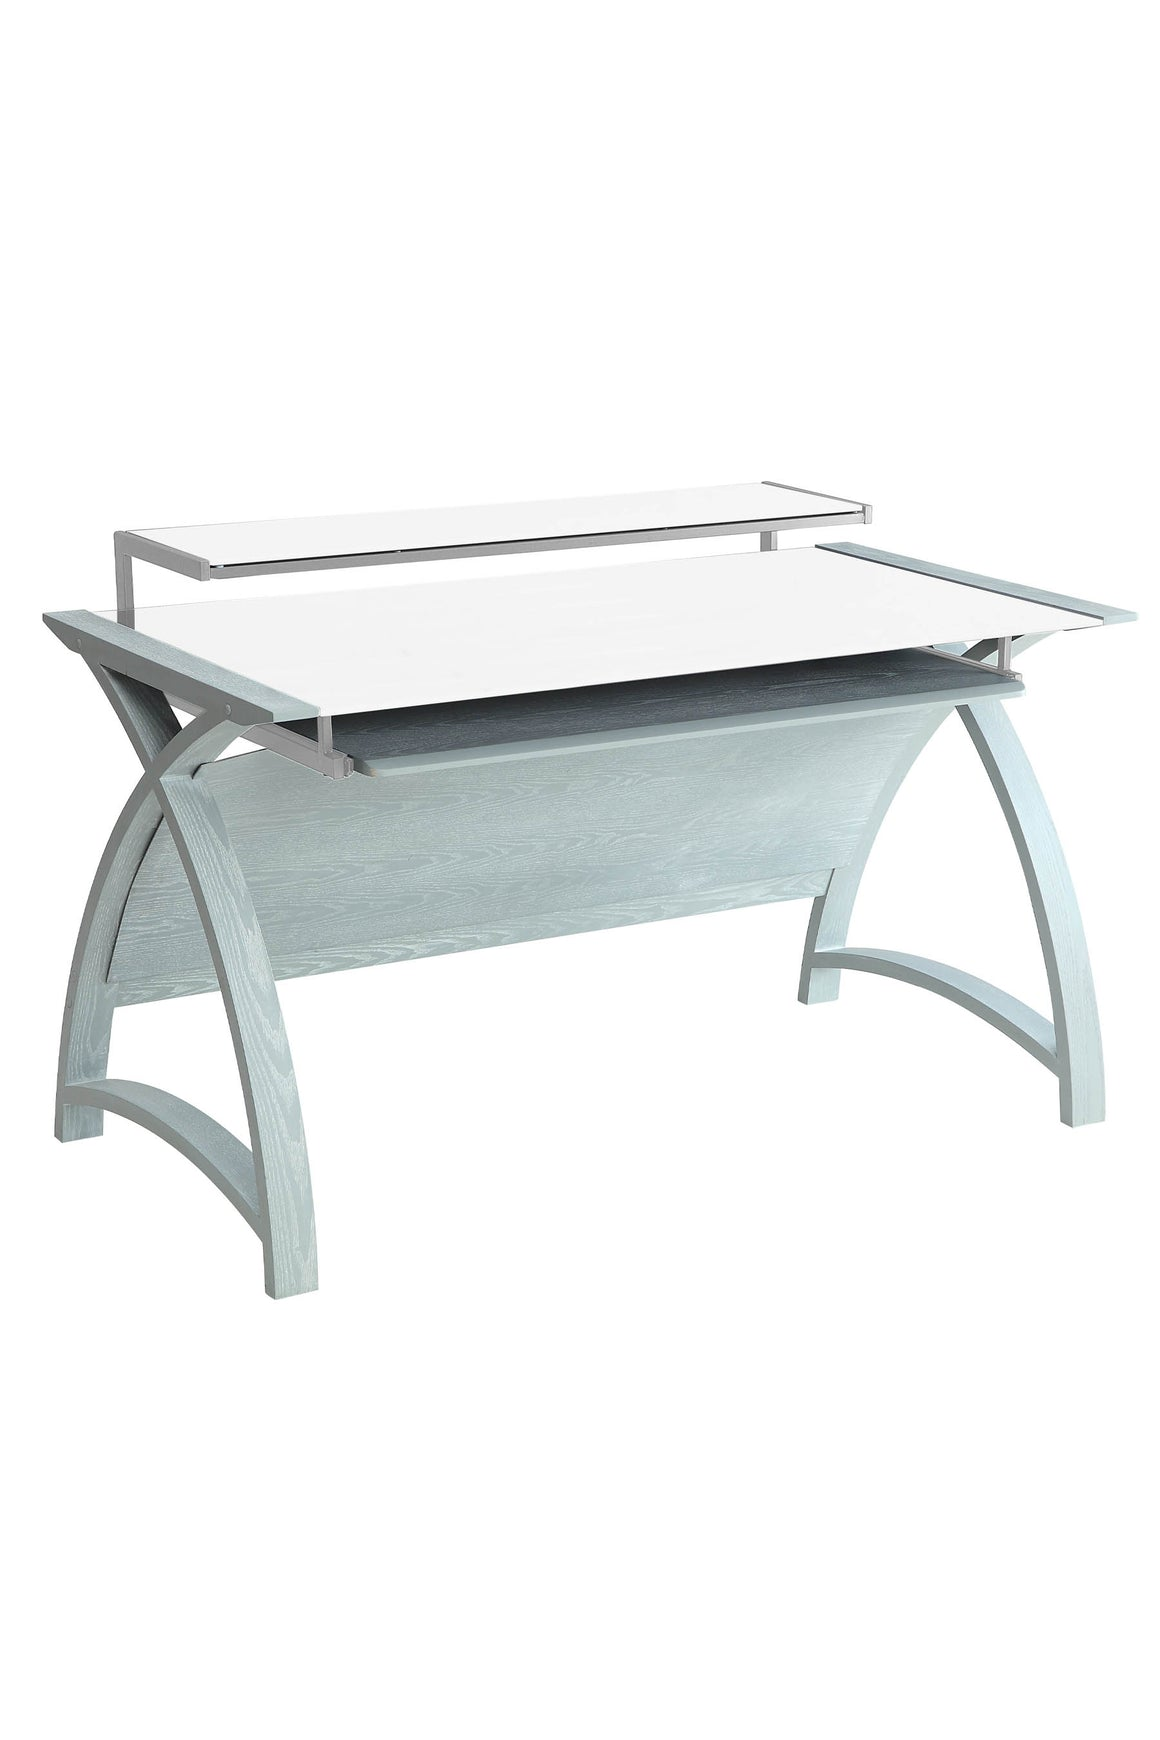 PC201 Helsinki 1300 Desk (Grey) - PRE ORDER FOR FEBRUARY DELIVERY